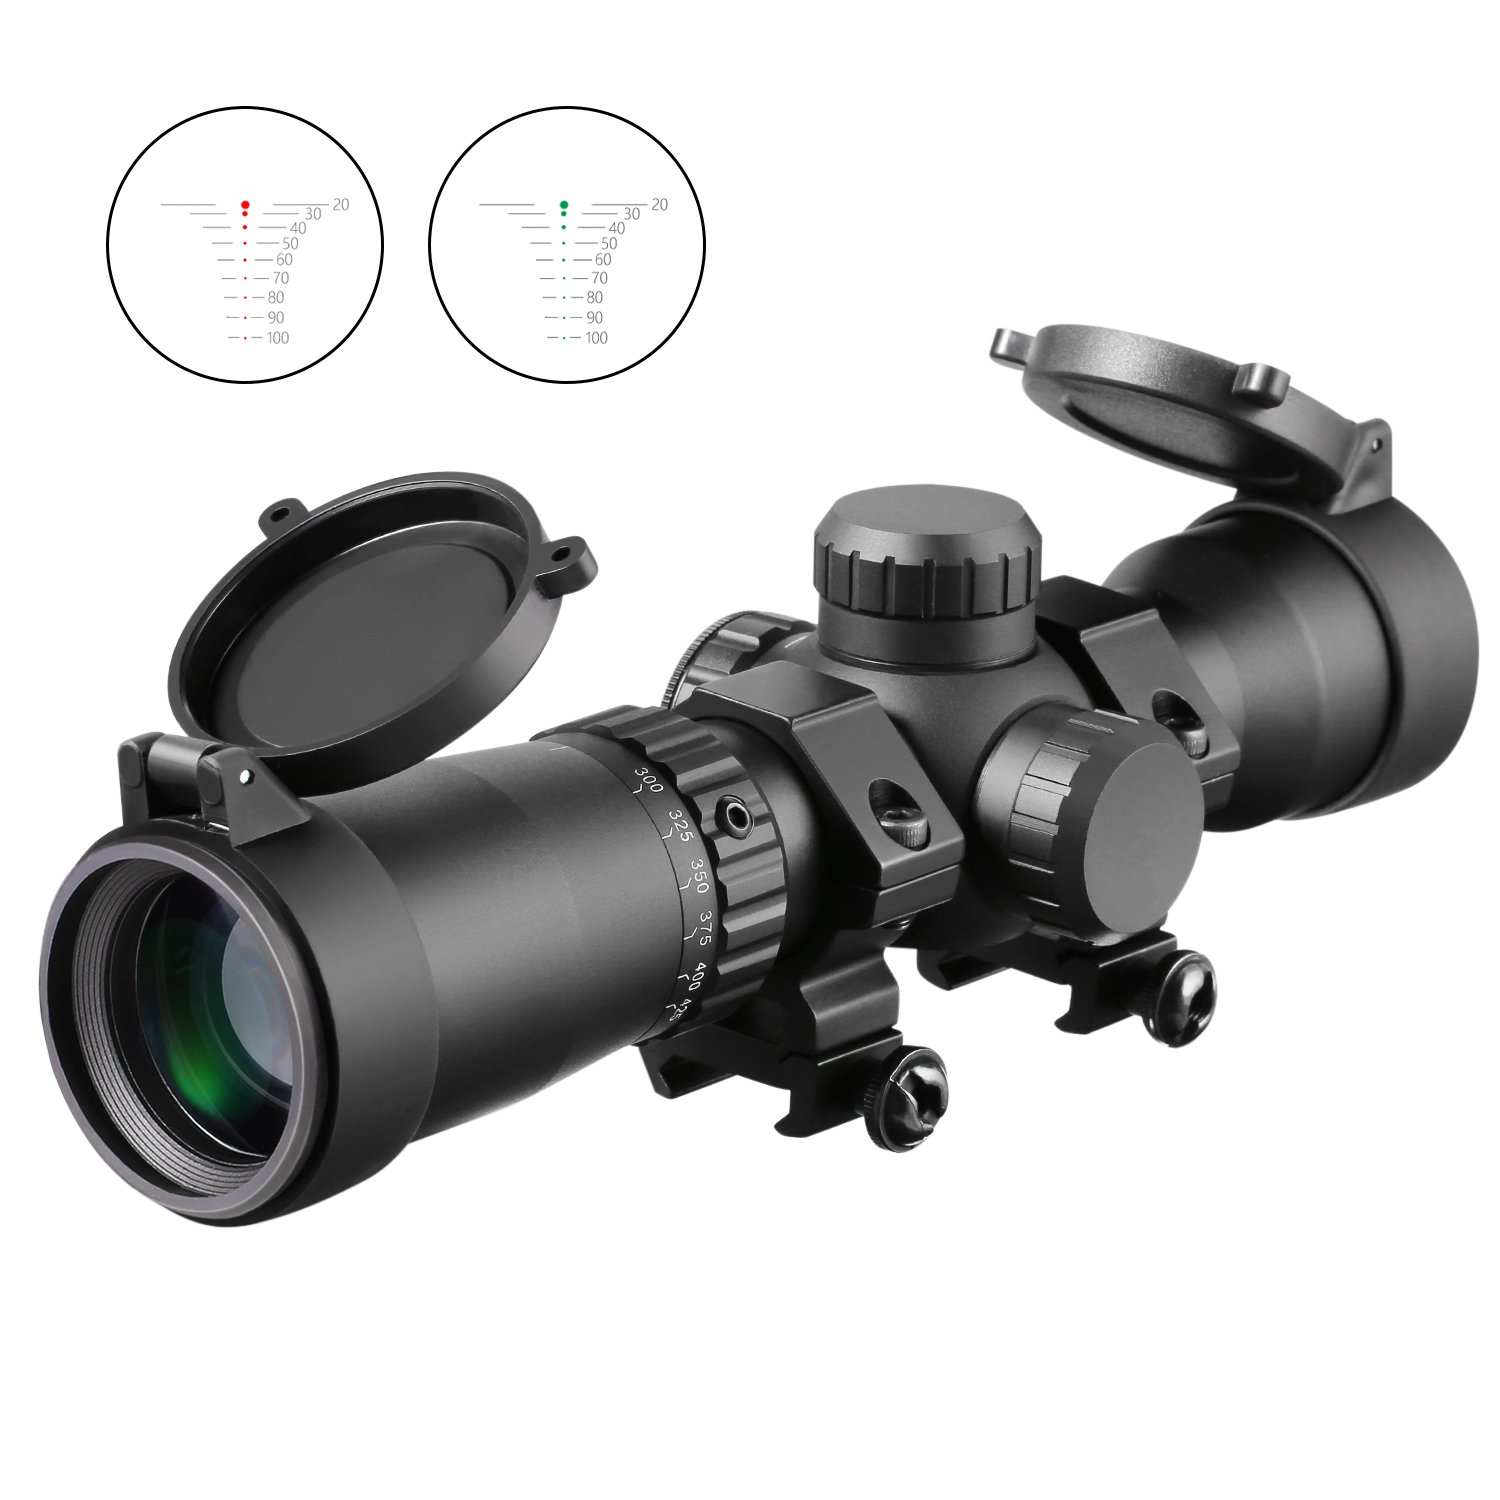 1.5-5x32 Crossbow Scope, 20-100 Yards Ballistic Reticle,300 FPS - 425 FPS Speed Adjustment Red Green Illuminated Mount Included by MA3TY